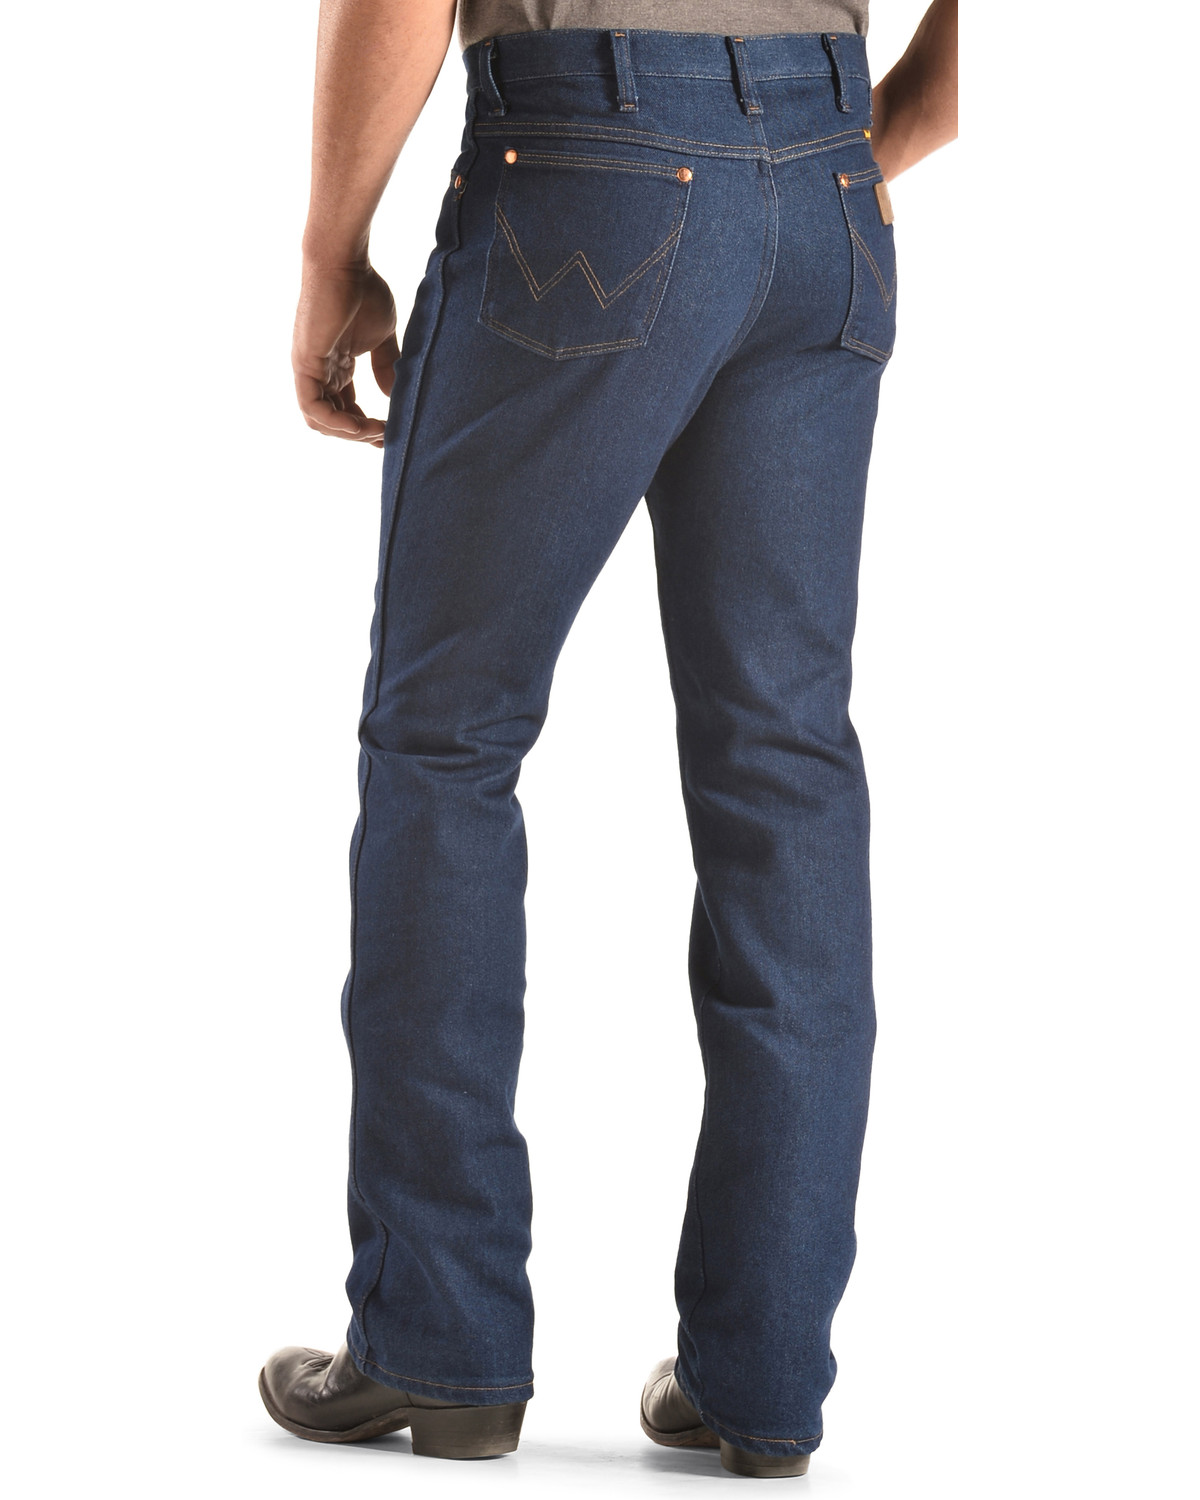 Wrangler Jeans 938 Slim Fit Stretch Country Outfitter